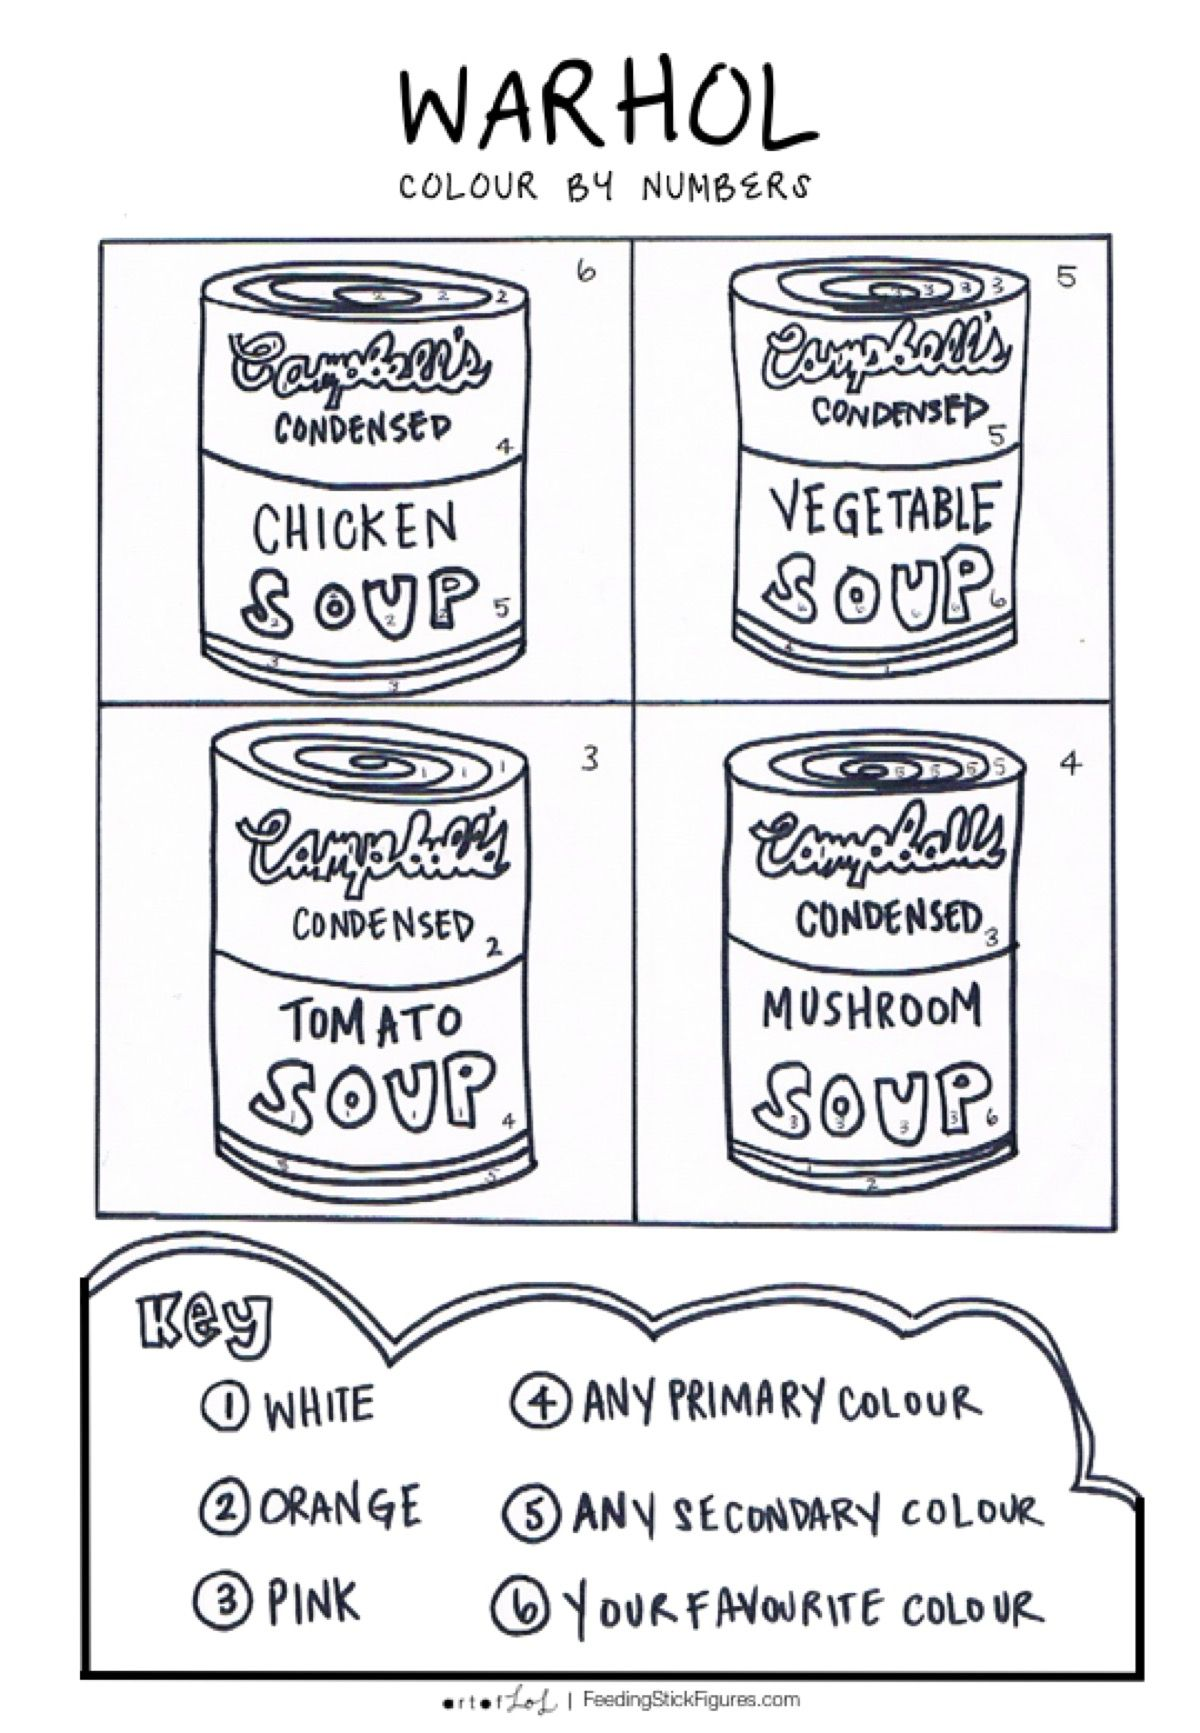 Warhol Pop Art Colour By Numbers Activity Sheet Pop Art Drawing